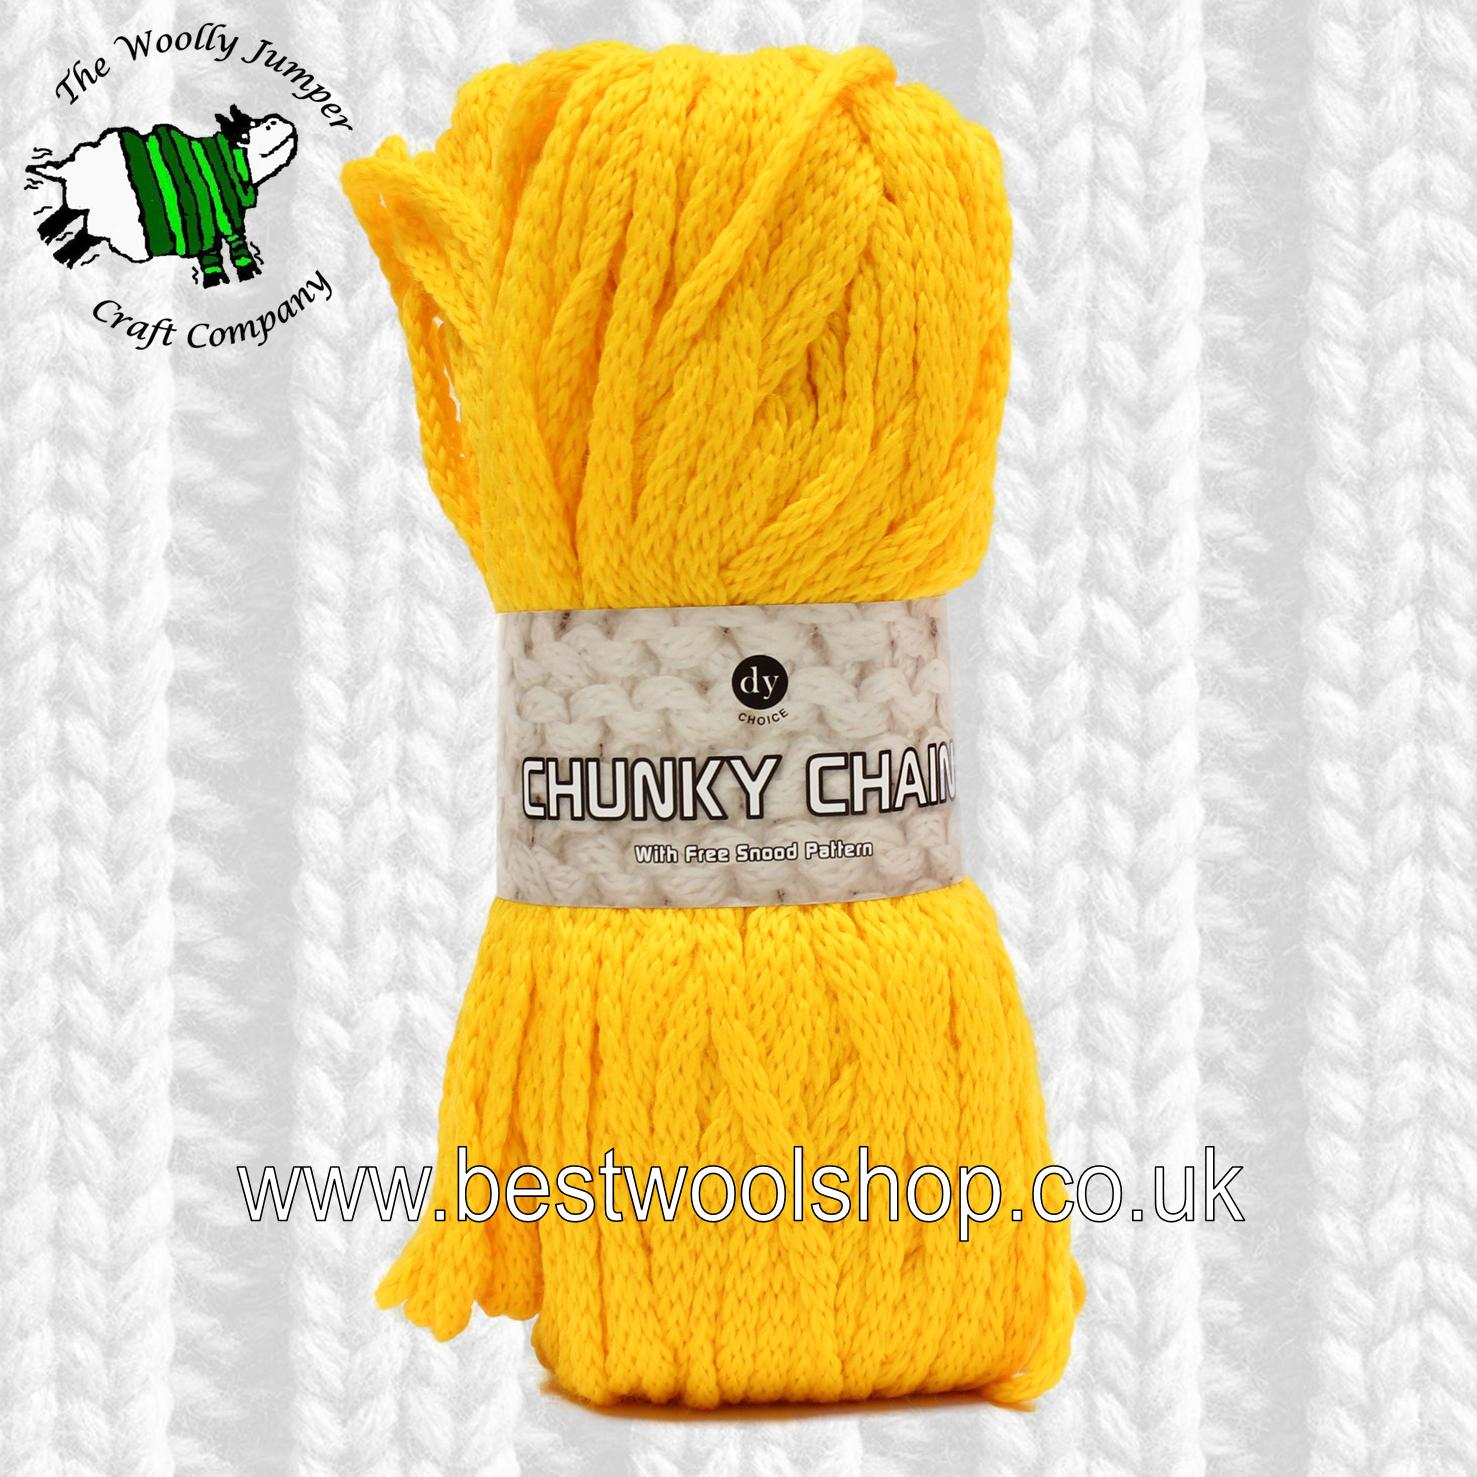 Free Knitting Patterns For Super Chunky Yarn 605 Sunshine Dy Choice Chunky Chain Super Chunky Knitting Crochet Yarn From Designer Yarns With Free Snood Knitting Pattern